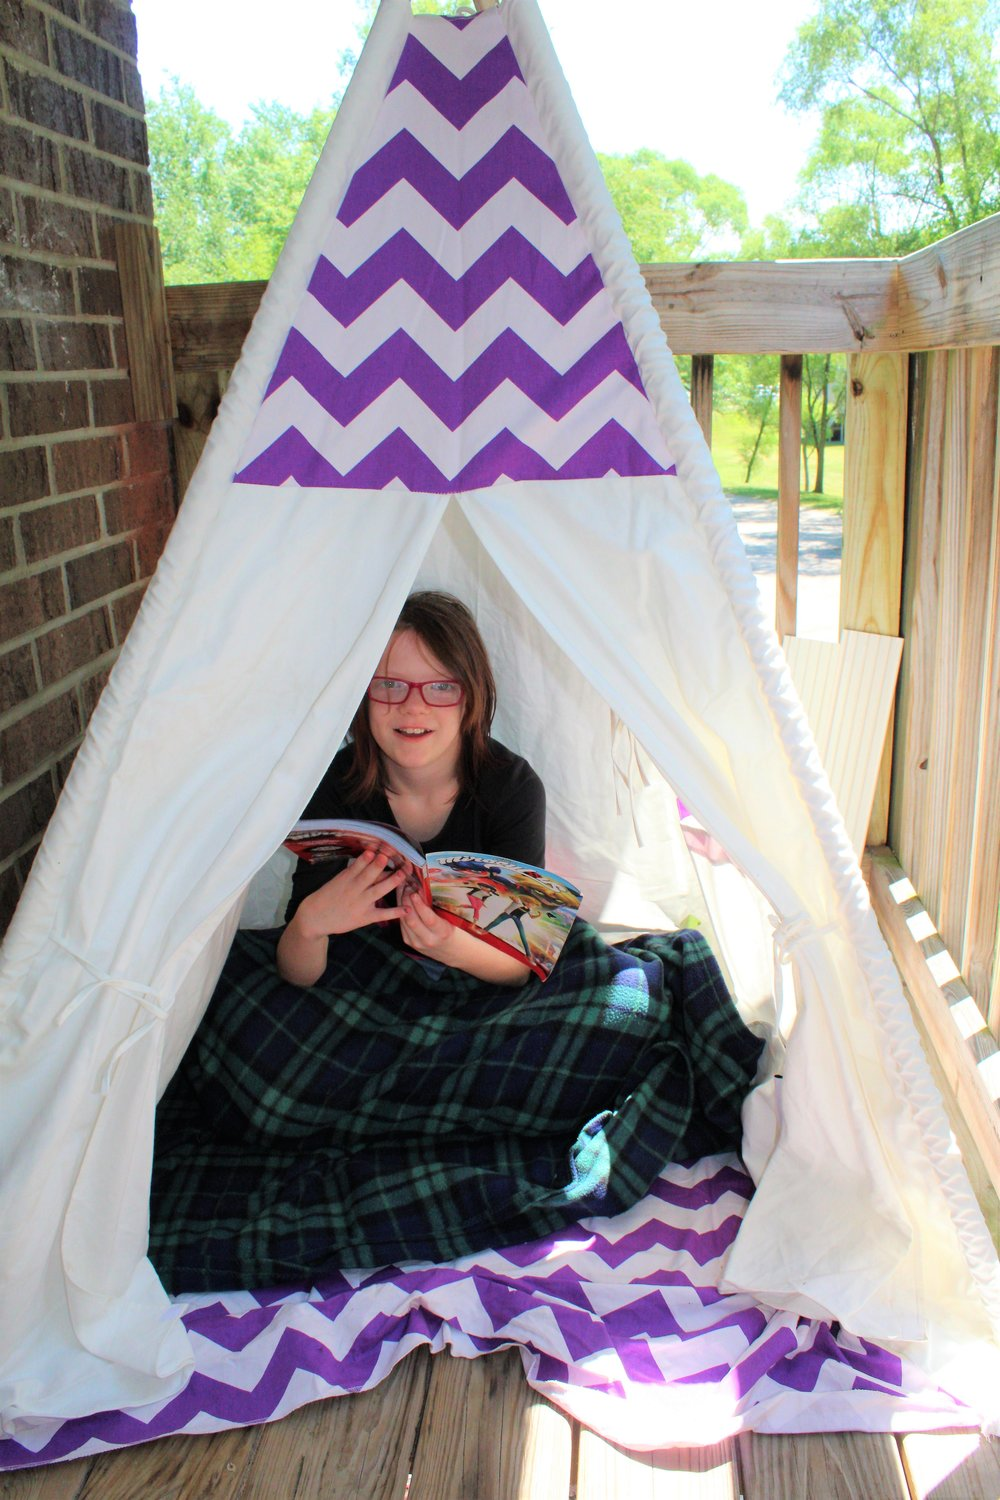 This is just one of the fun products we got in the mail to help spread the word. My daughter love checking the mail box another favorite was a necklace from an instagram friend of ours. This teepee was a big hit and got a ton of views. Bella loves playing with it in the summer on our deck